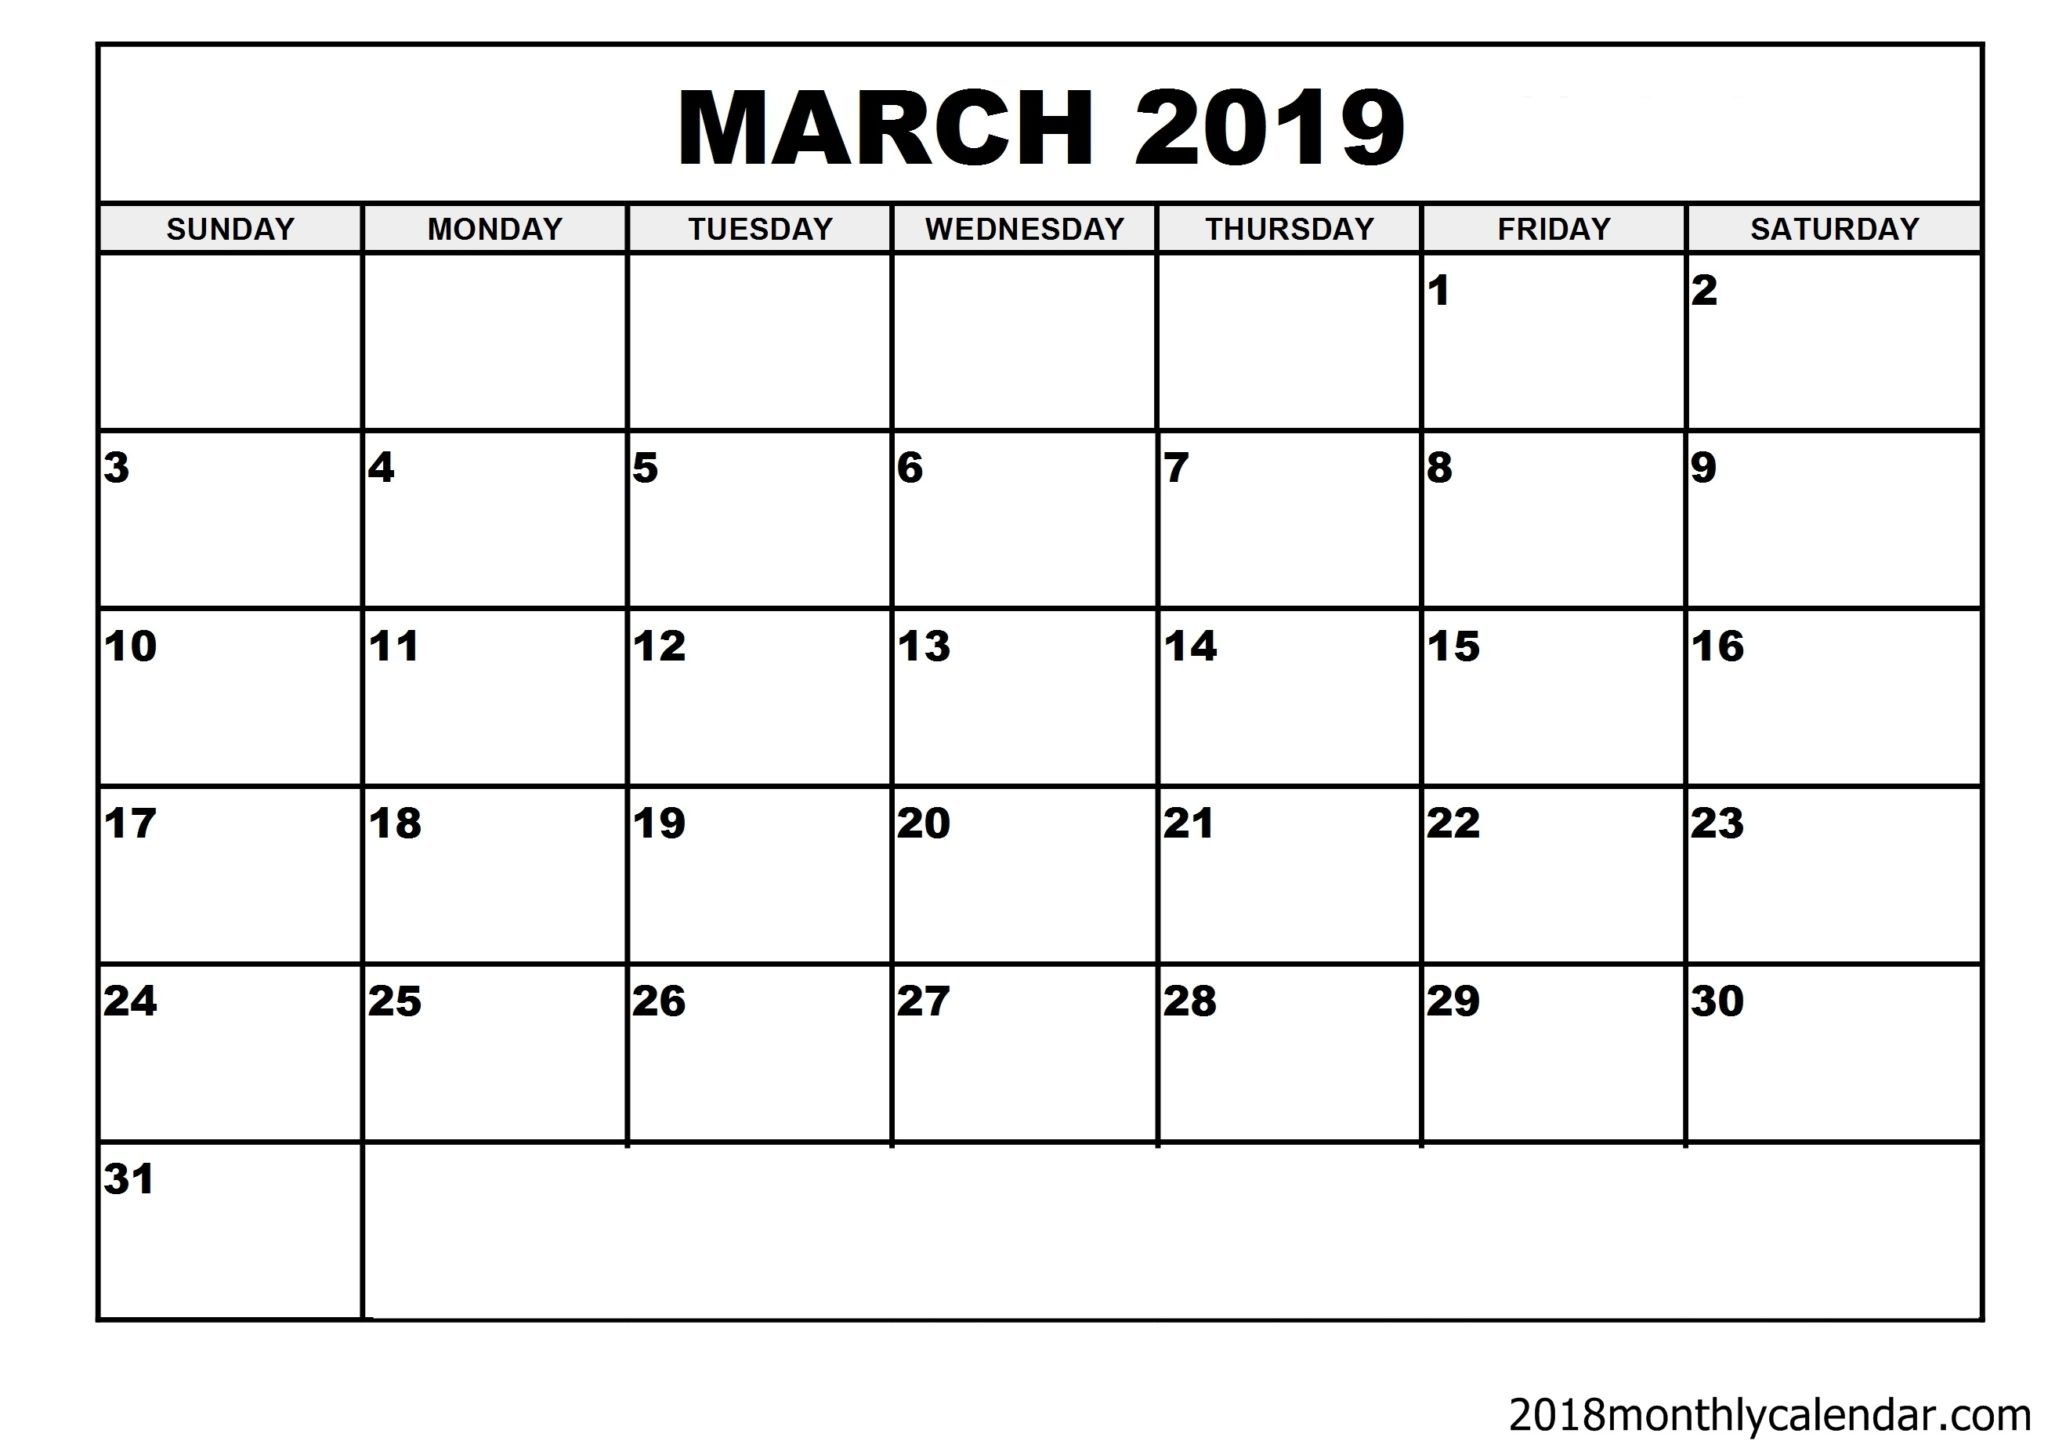 Download March 2019 Calendar – Blank Template - Editable Calendar pertaining to Blank Excel Spreadsheet With Calendar